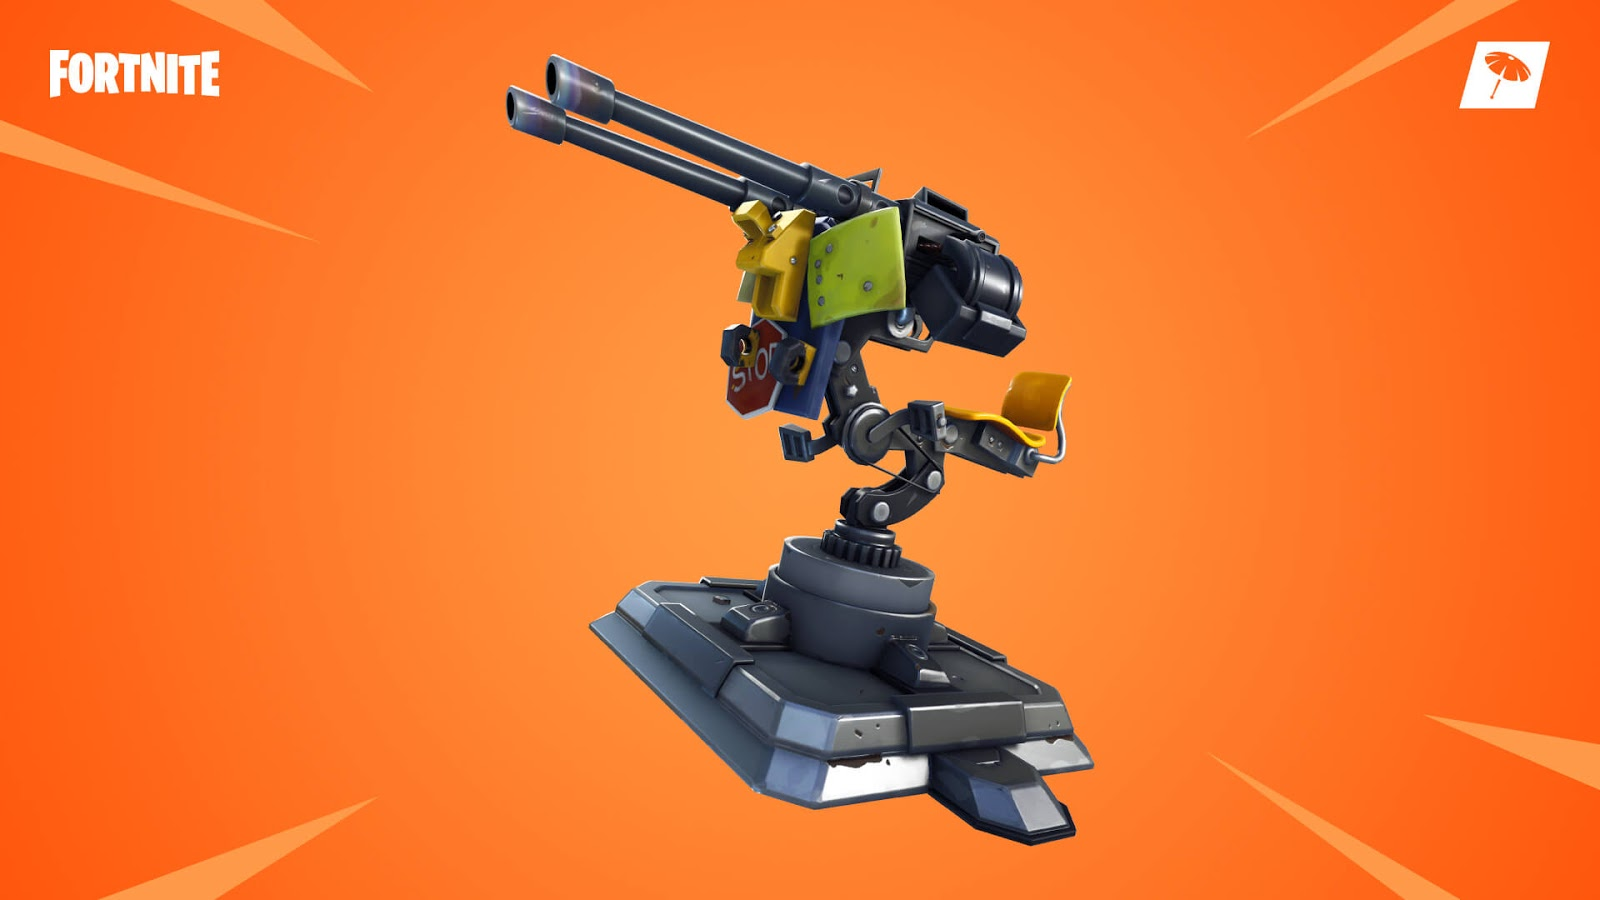 Fortnite Patch Notes Update 6.30 Food Fight LTM, Mounted Turret, Glider Change